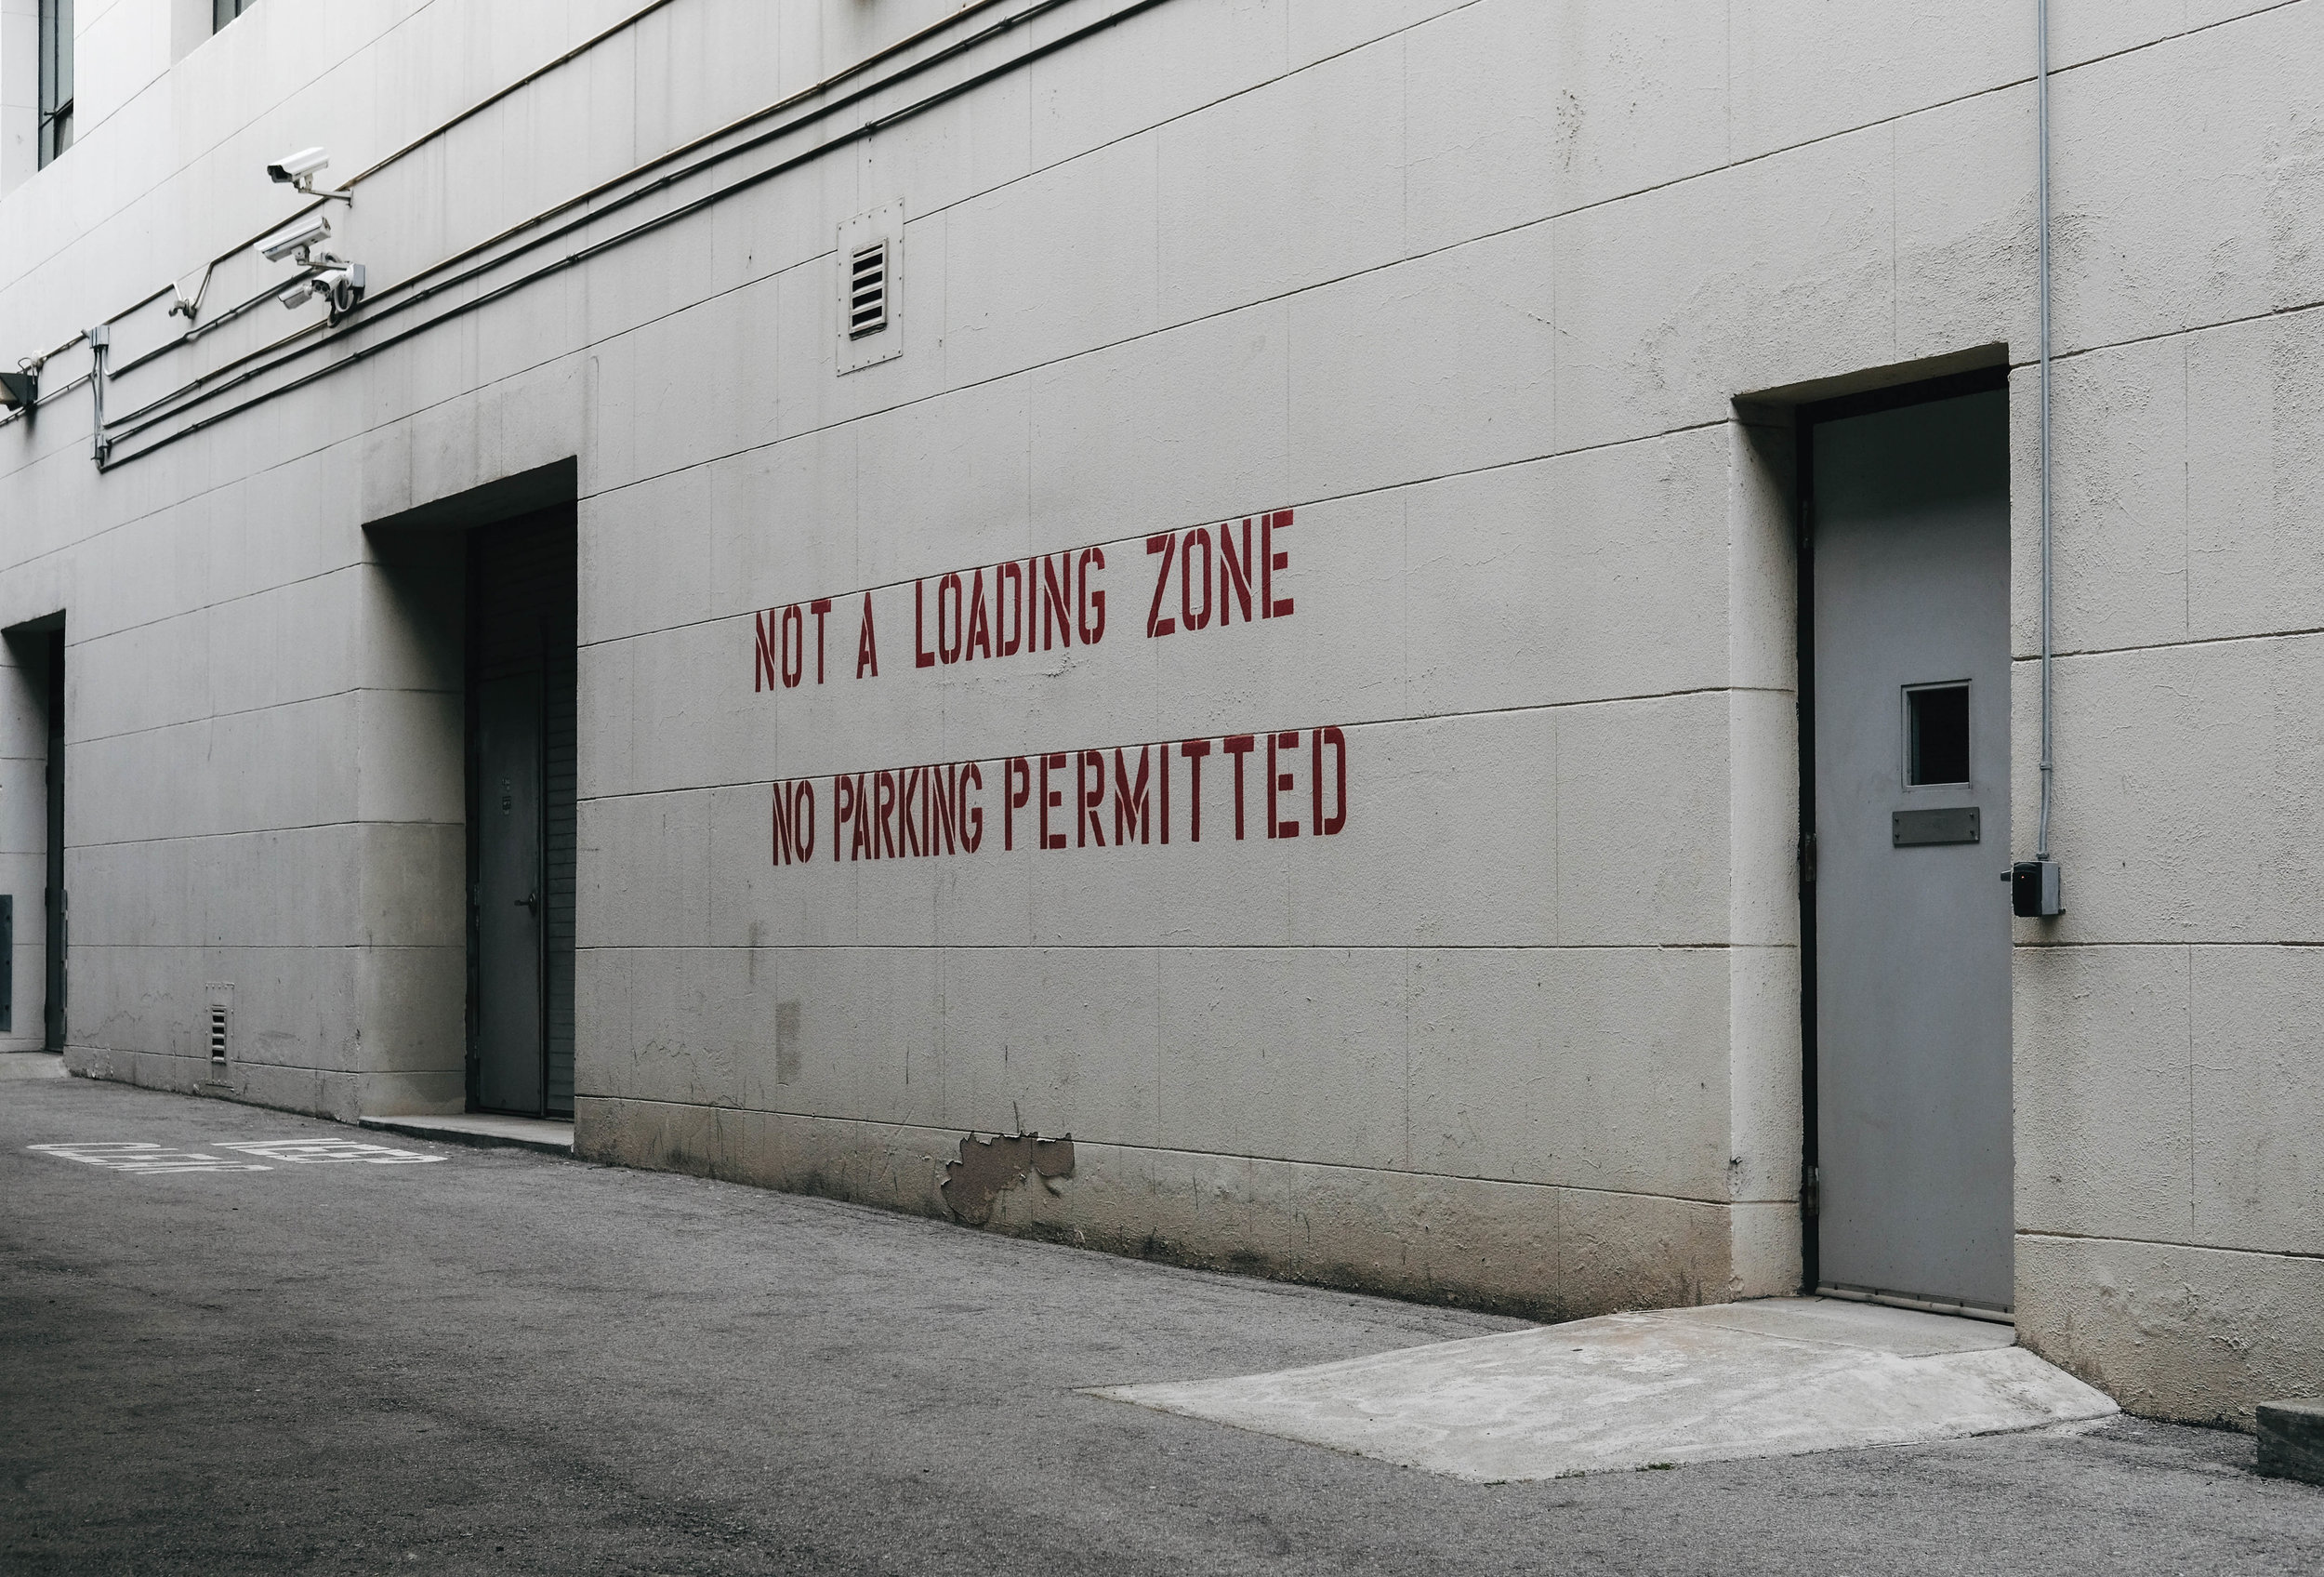 "<p style=""font-family:brandon-grotesque;font-weight:500; font-size:11px; text-center:left; color:light grey;letter-spacing: 1px"">AUGUST 16, 2017 • NOT A LOADING ZONE • � San Francisco, CA</p>"